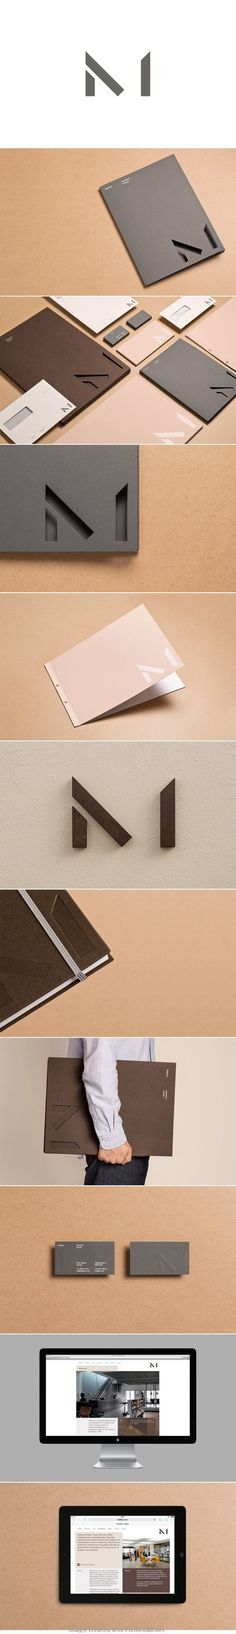 Mellbye Architects identity by Heydays, Oslo